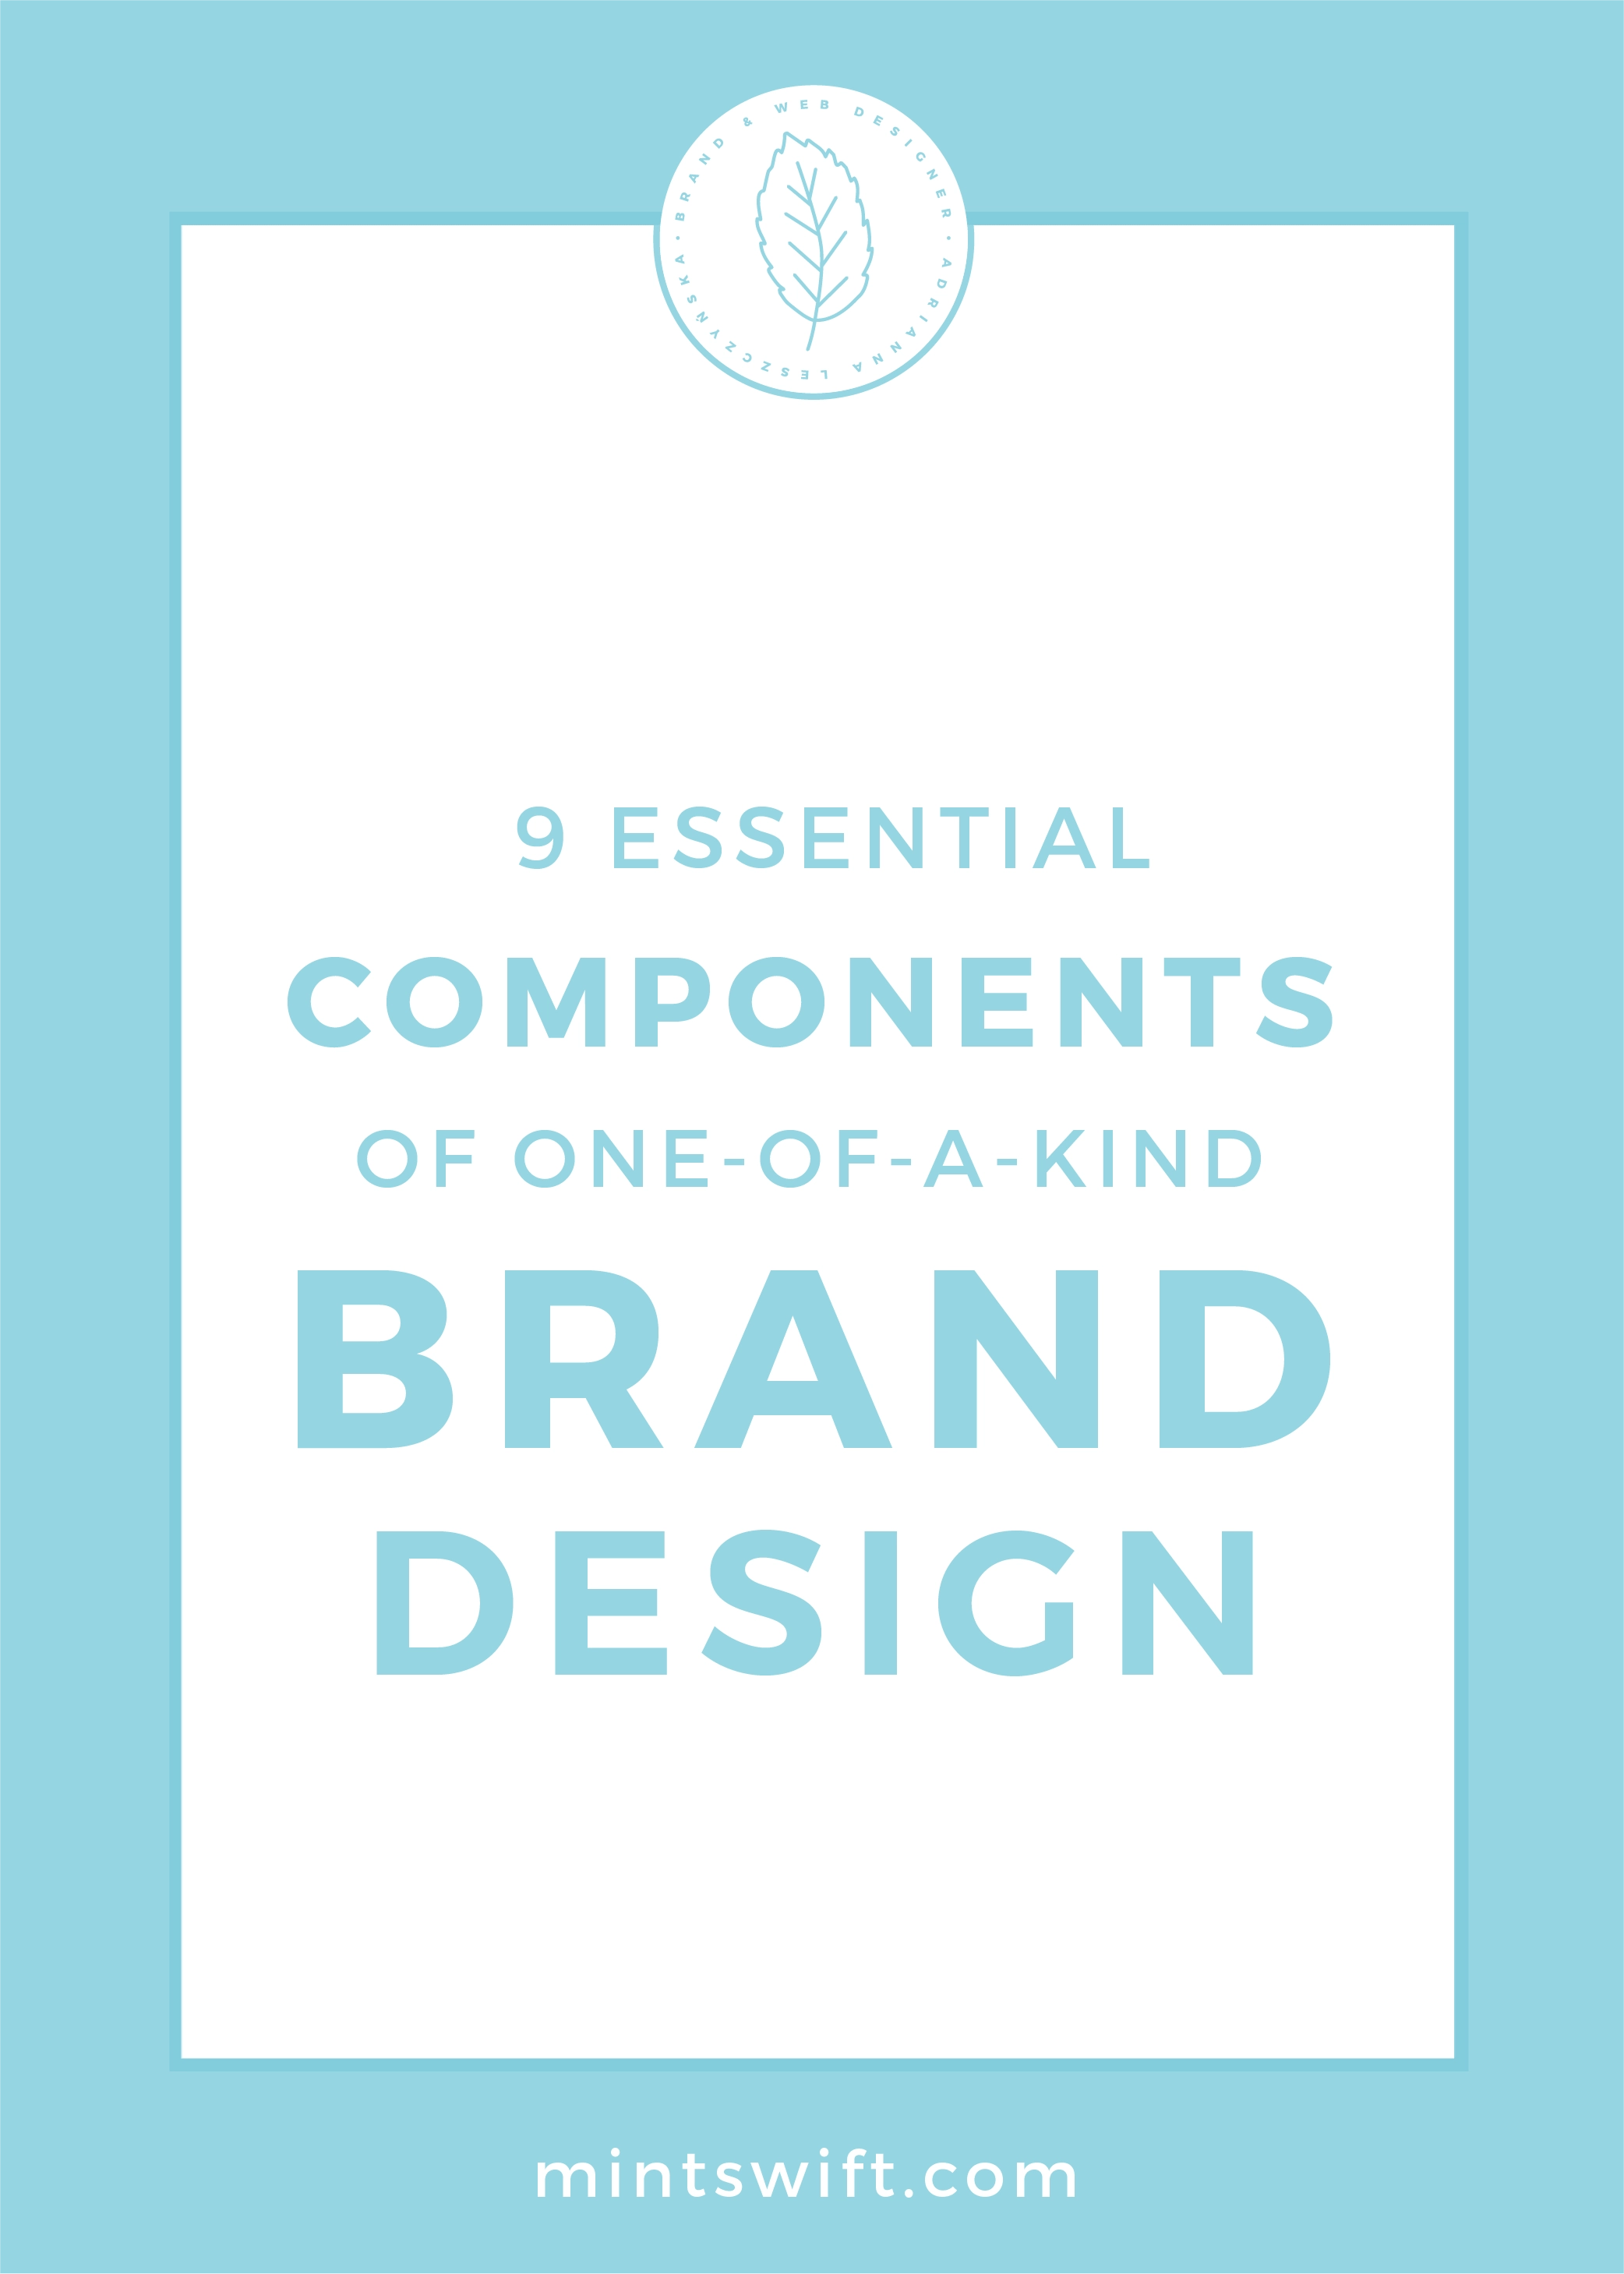 9 Essential Components of one-of-a-kind Brand Design by MintSwift